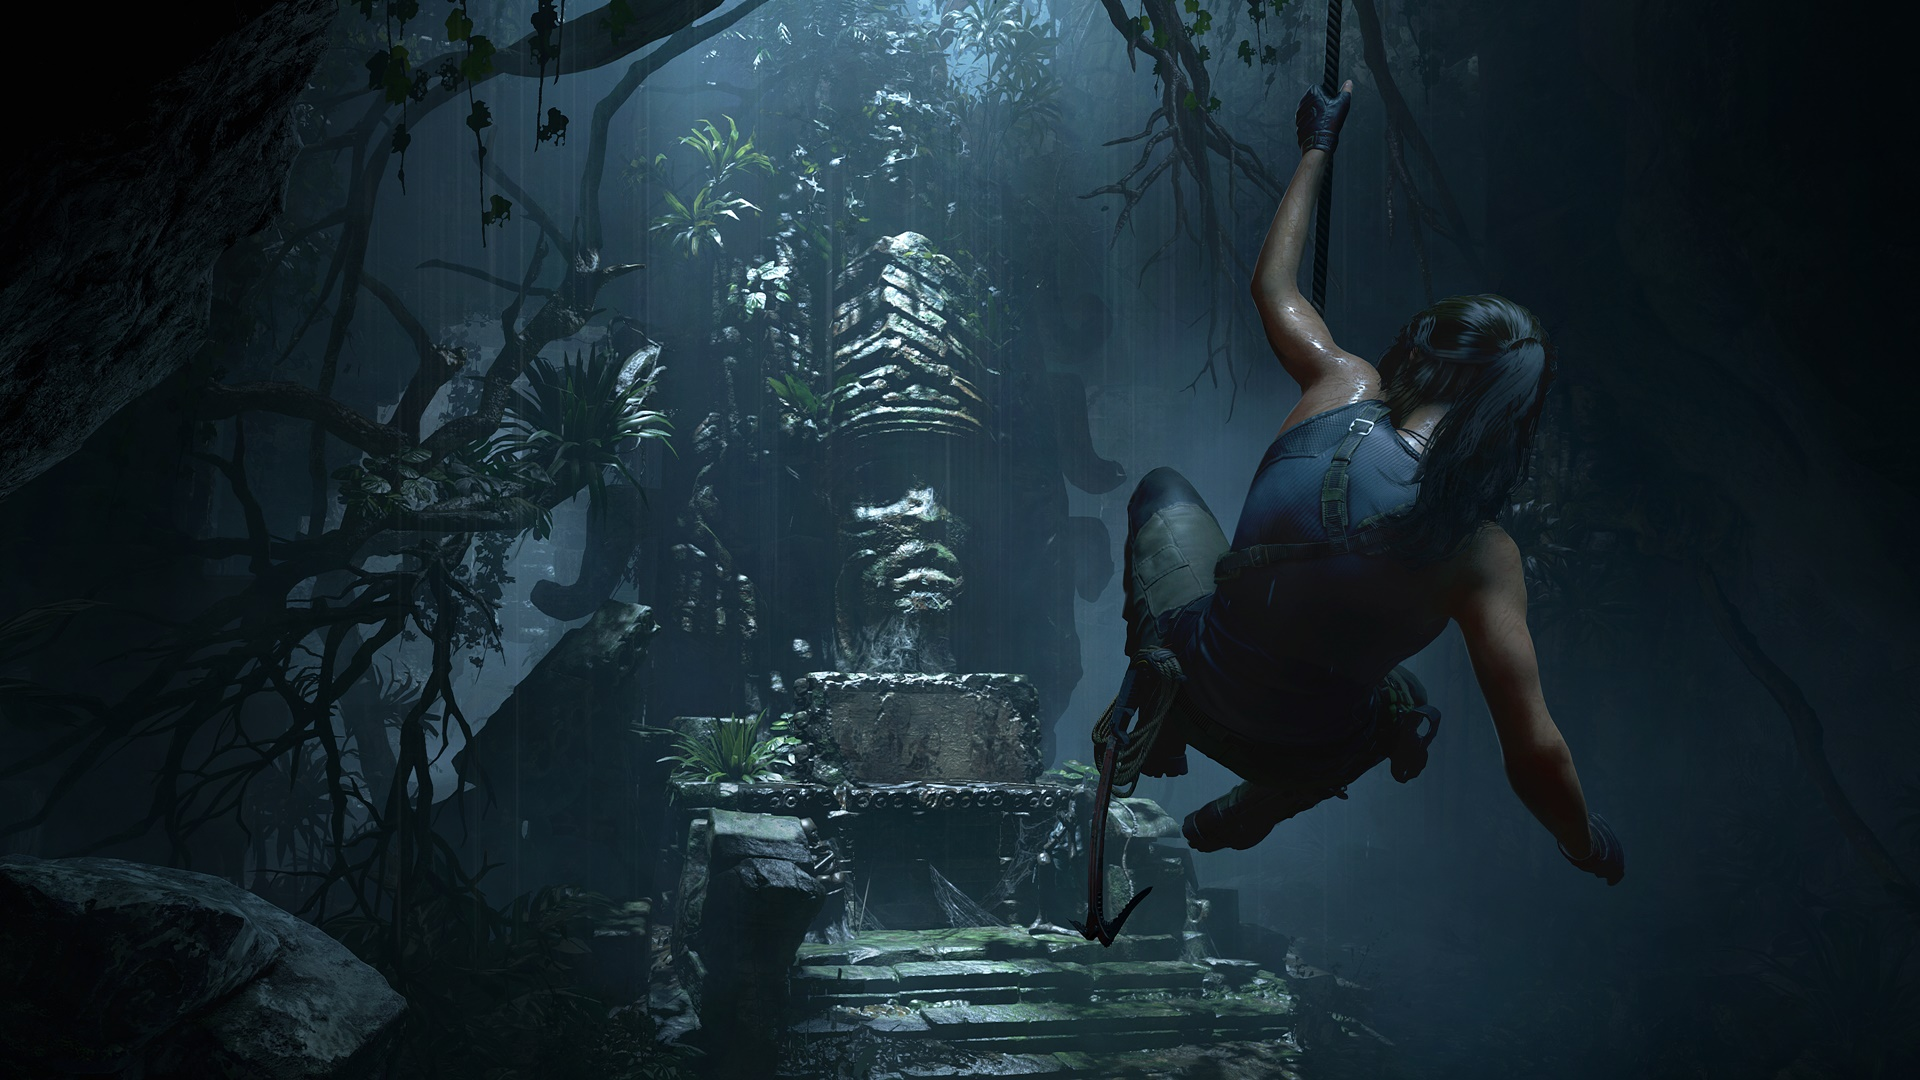 Tomb Raider is getting a Netflix series from The Witcher: Blood Origin writer